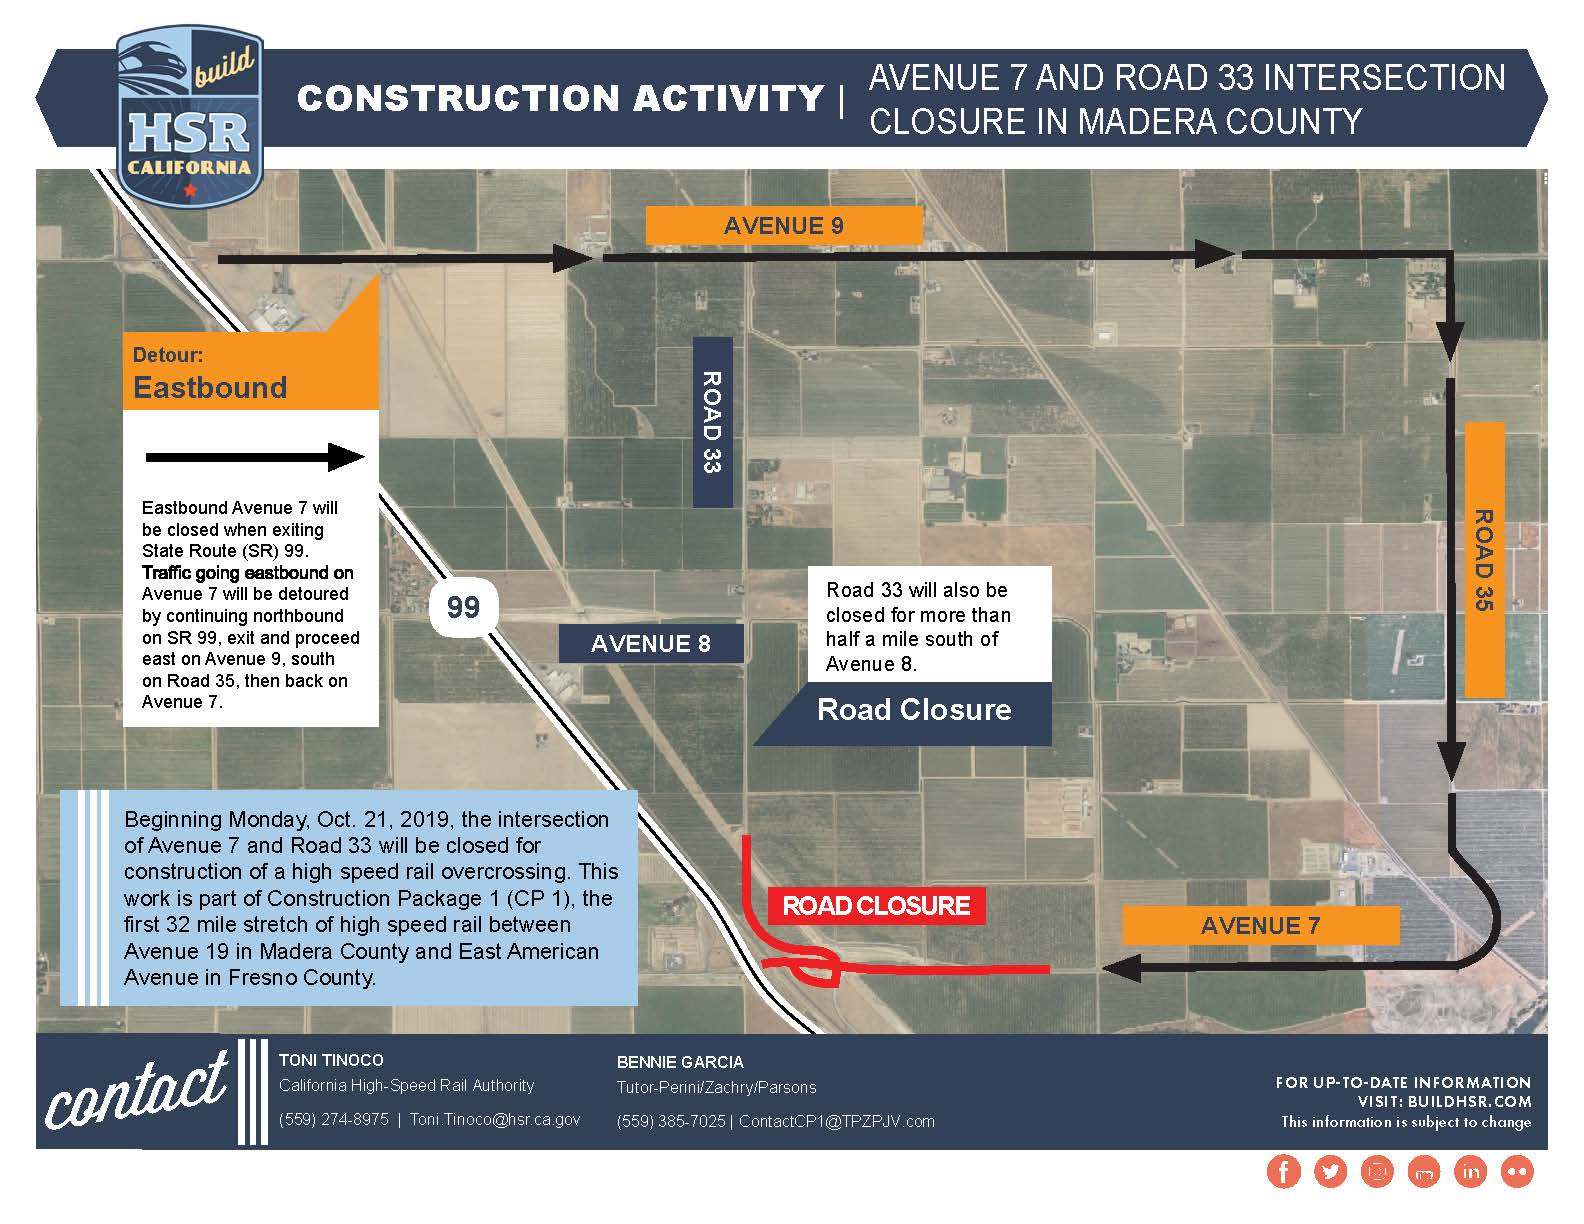 Avenue 7 and Road 33 Intersection Closure in Madera County - Map